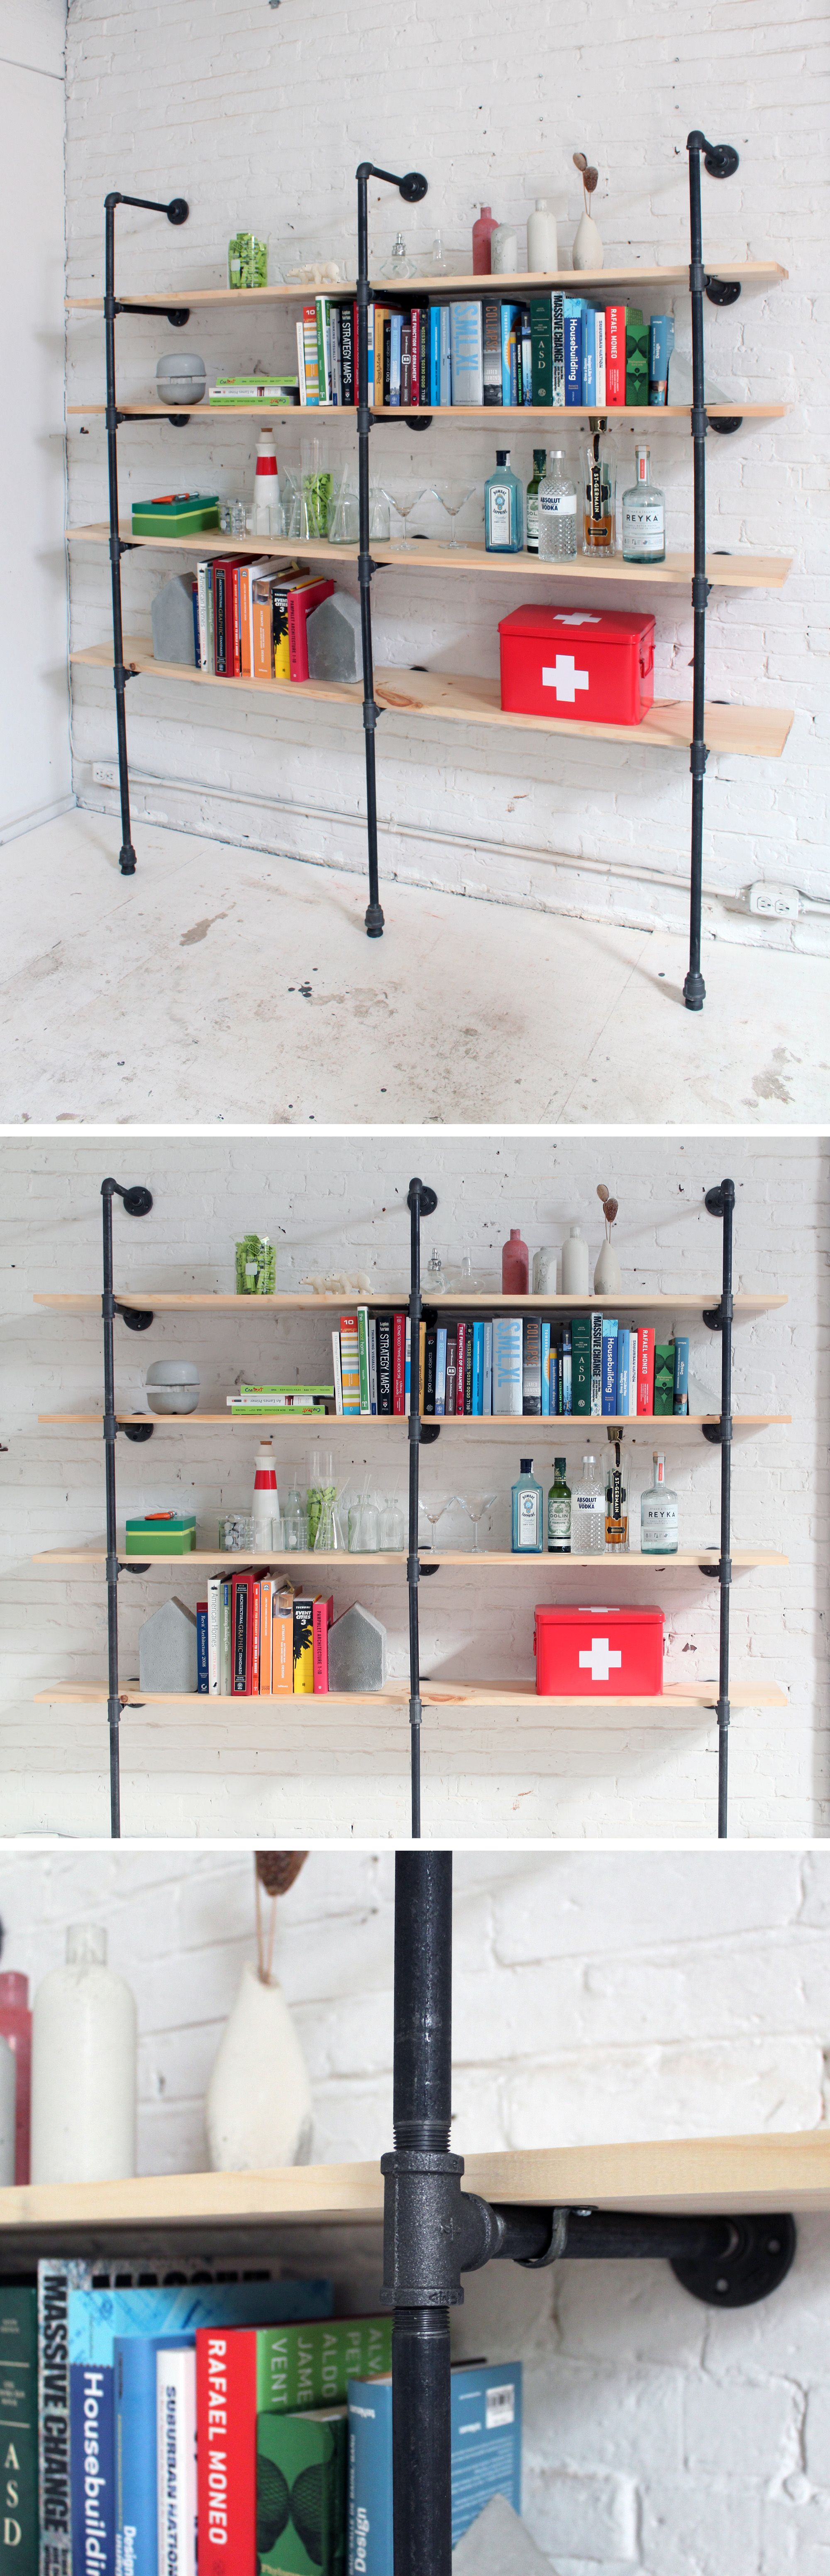 Shelves made out of iron pipe fittings